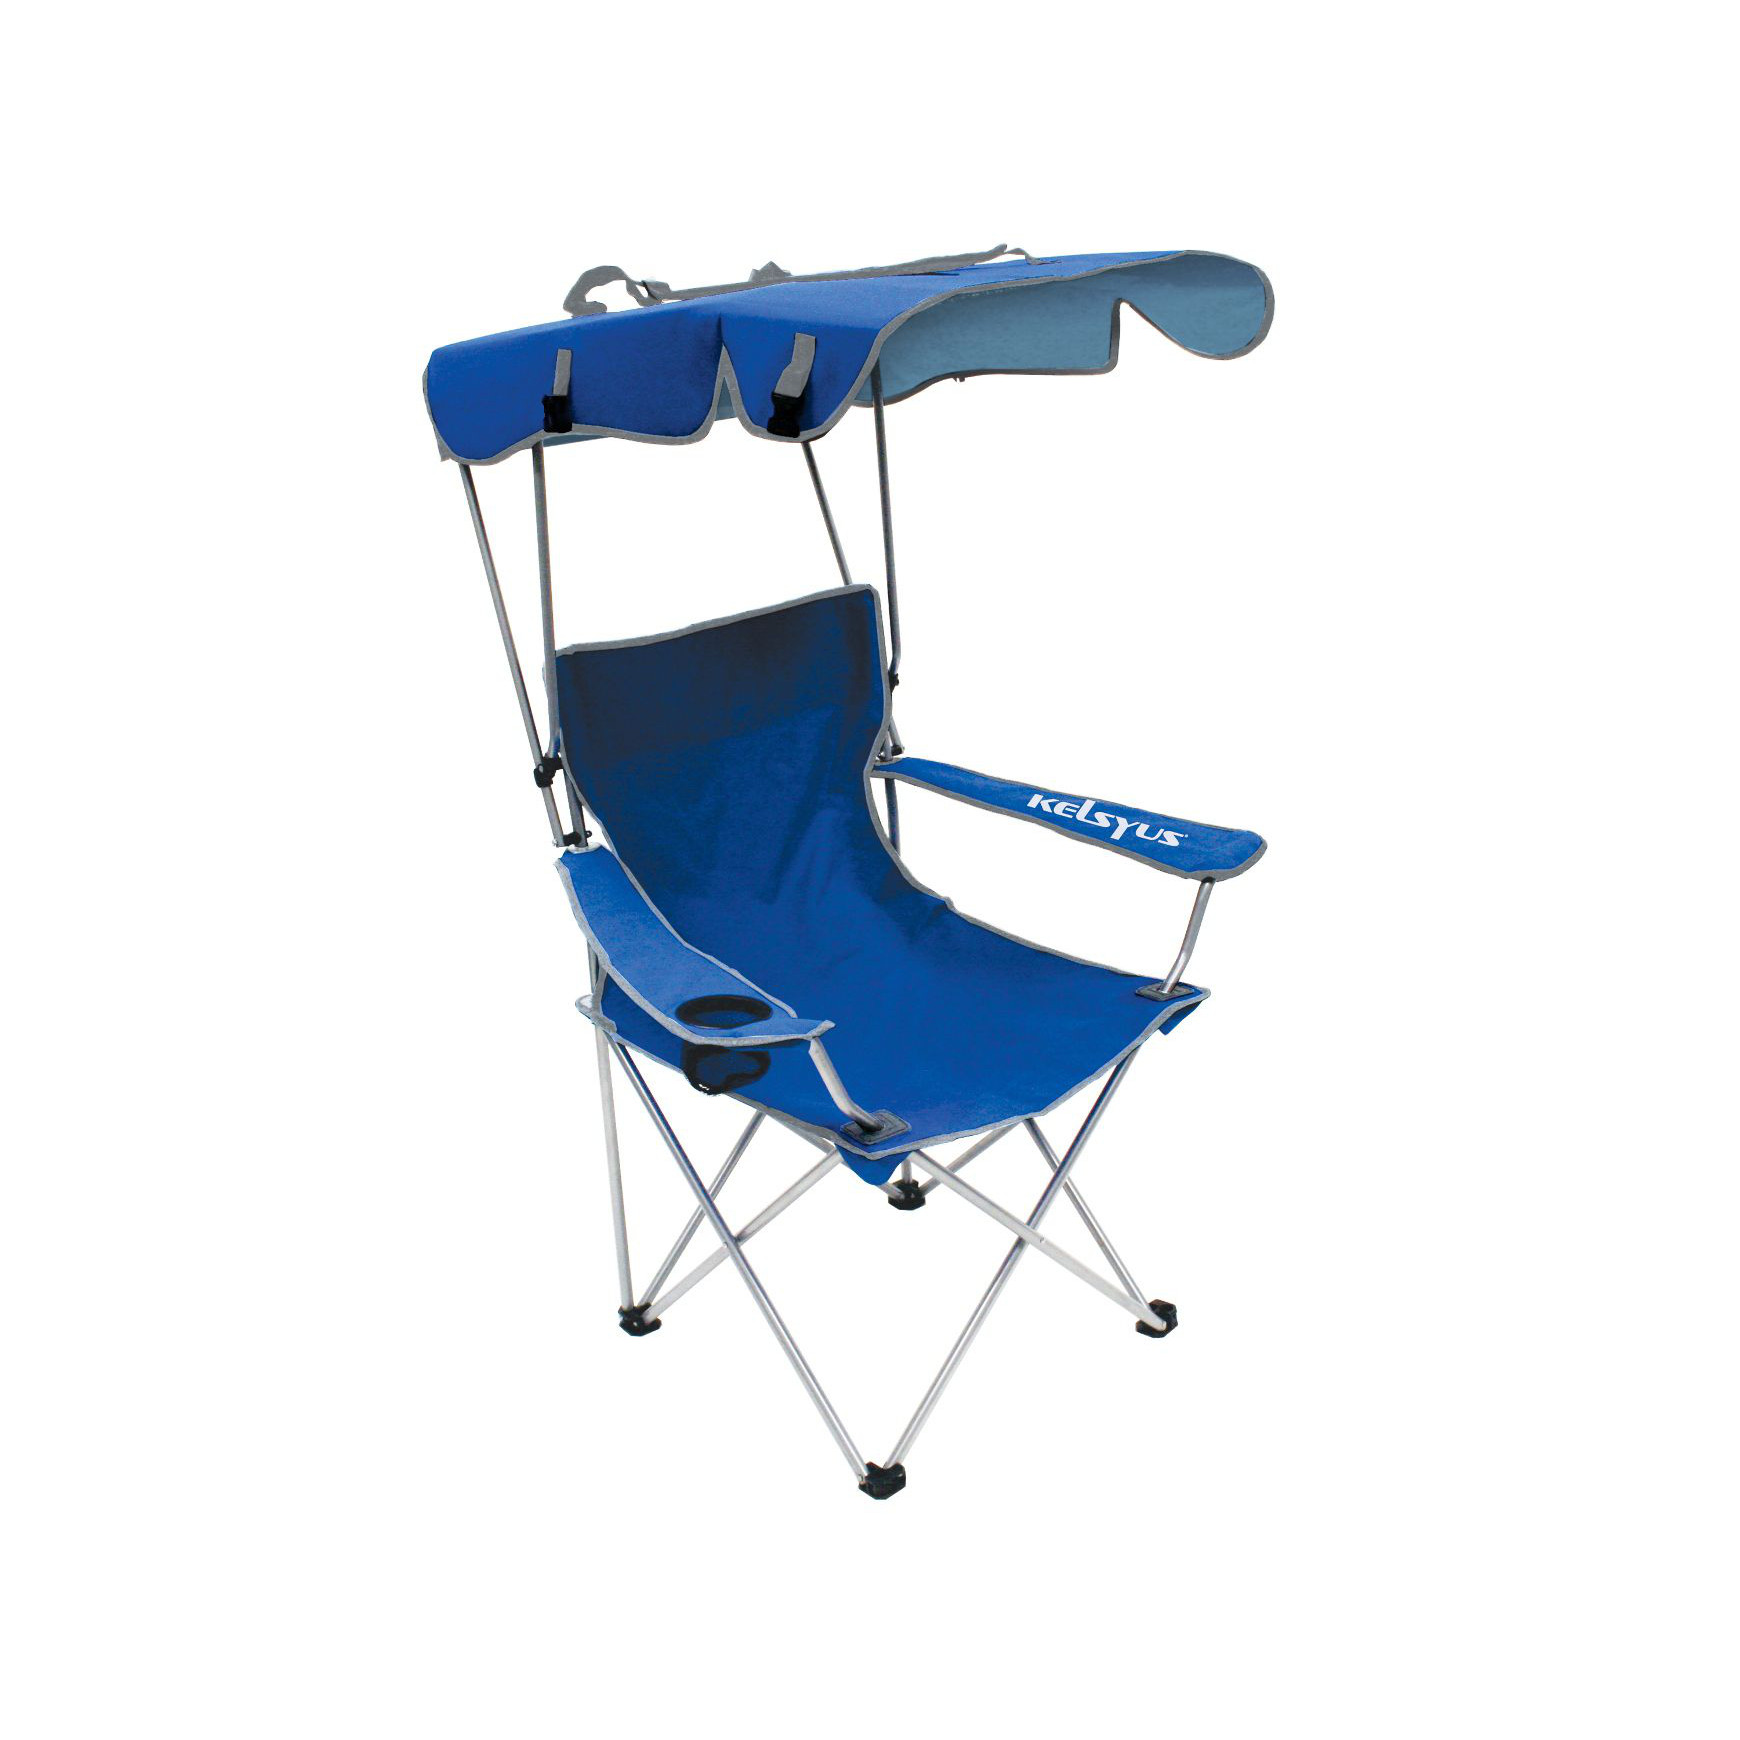 Camping Chairs With Canopy Kelsyus Convertible Canopy Folding Camping Shade Outdoor